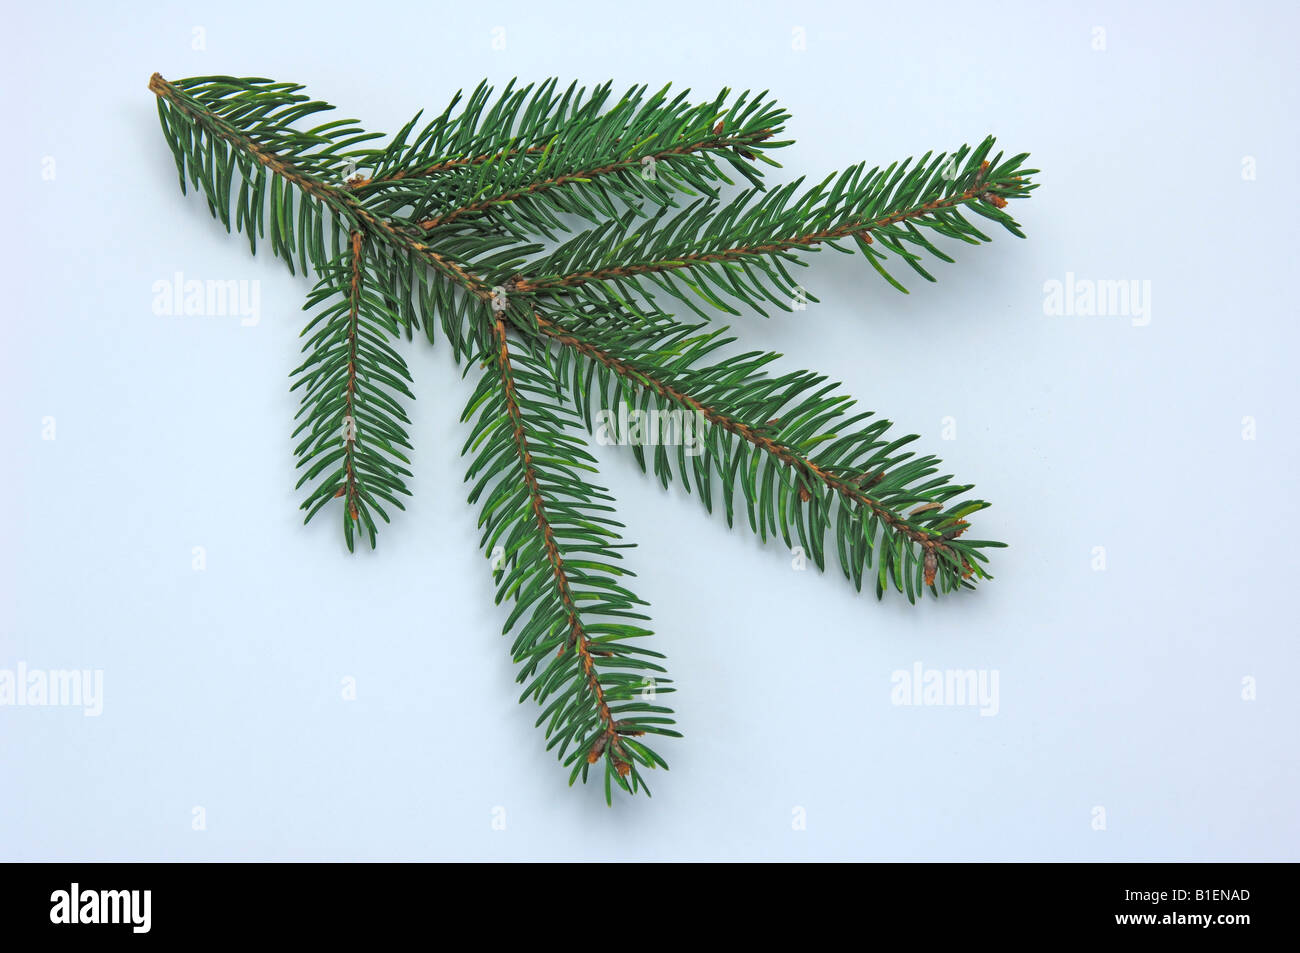 Common Spruce, Norway Spruce (Picea abies), twig, studio picture - Stock Image